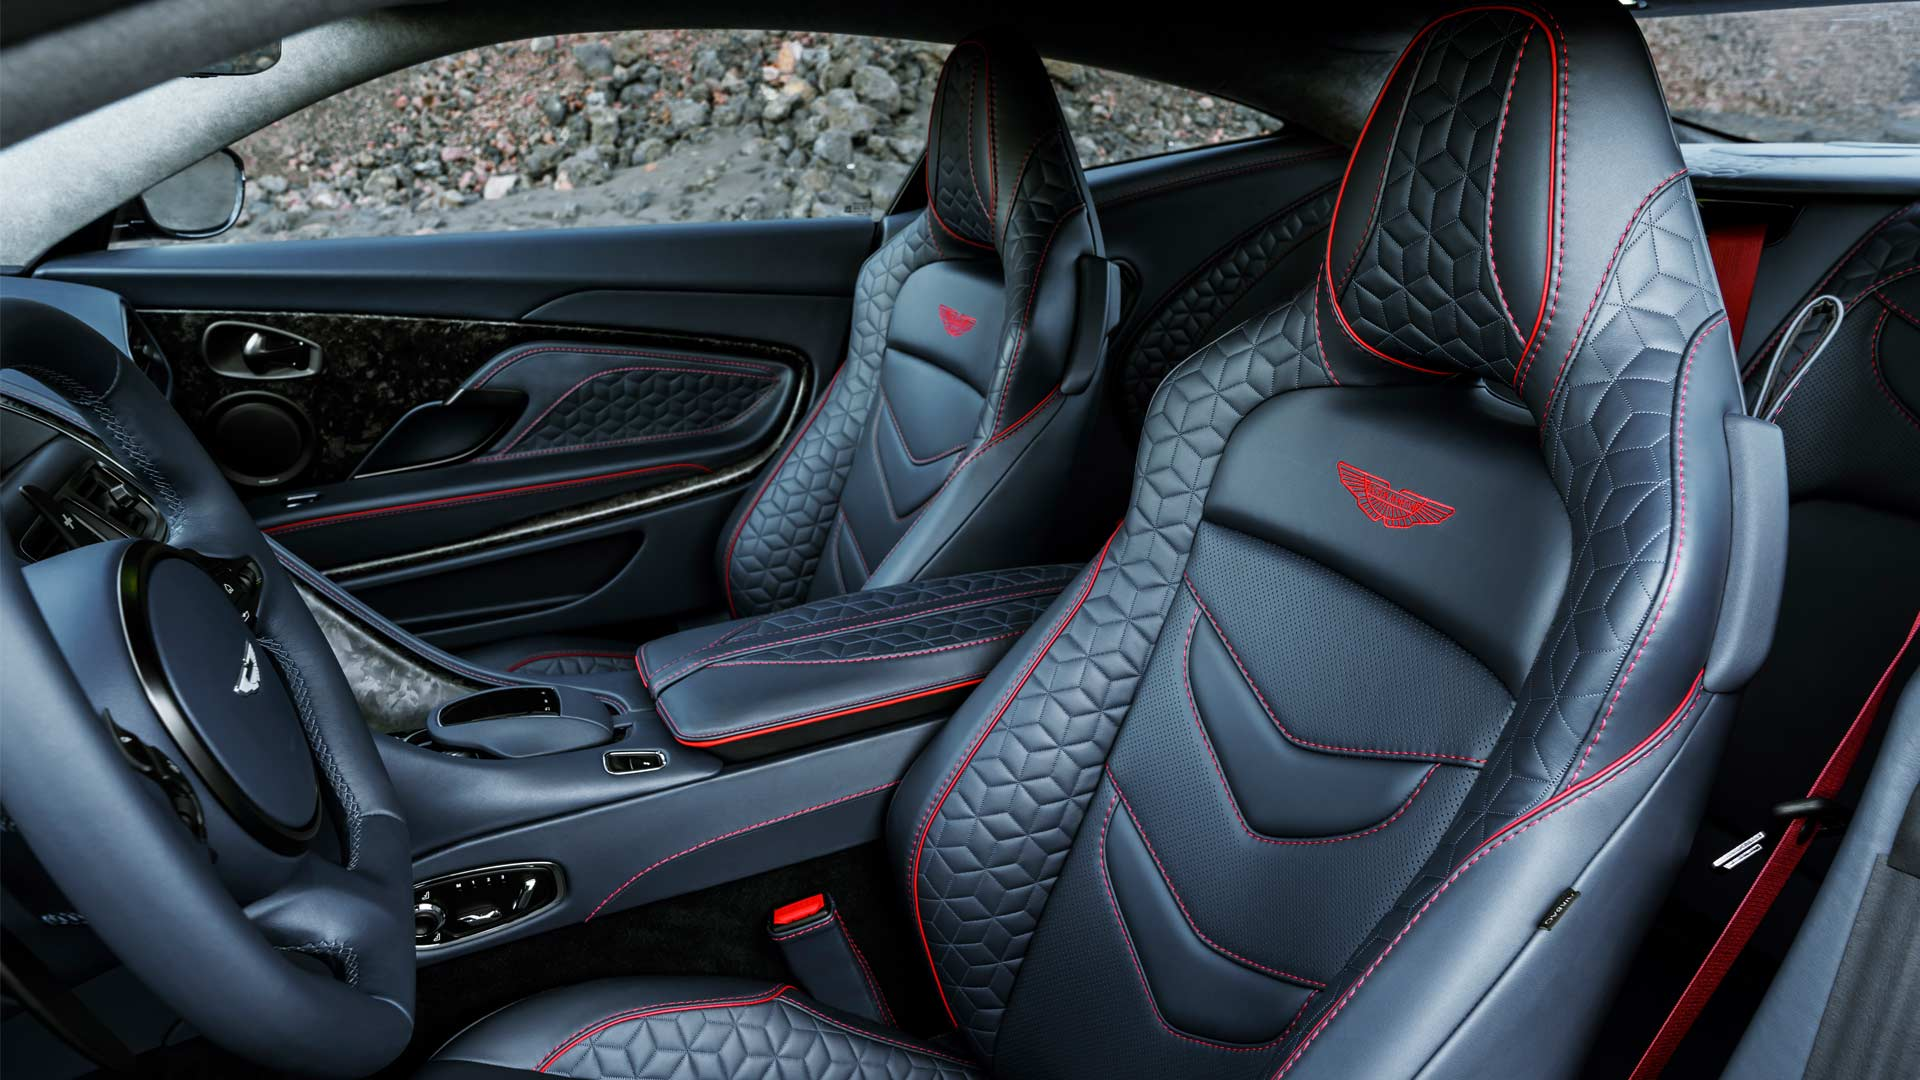 2018-Aston-Martin-DBS-Superleggera-interior_2